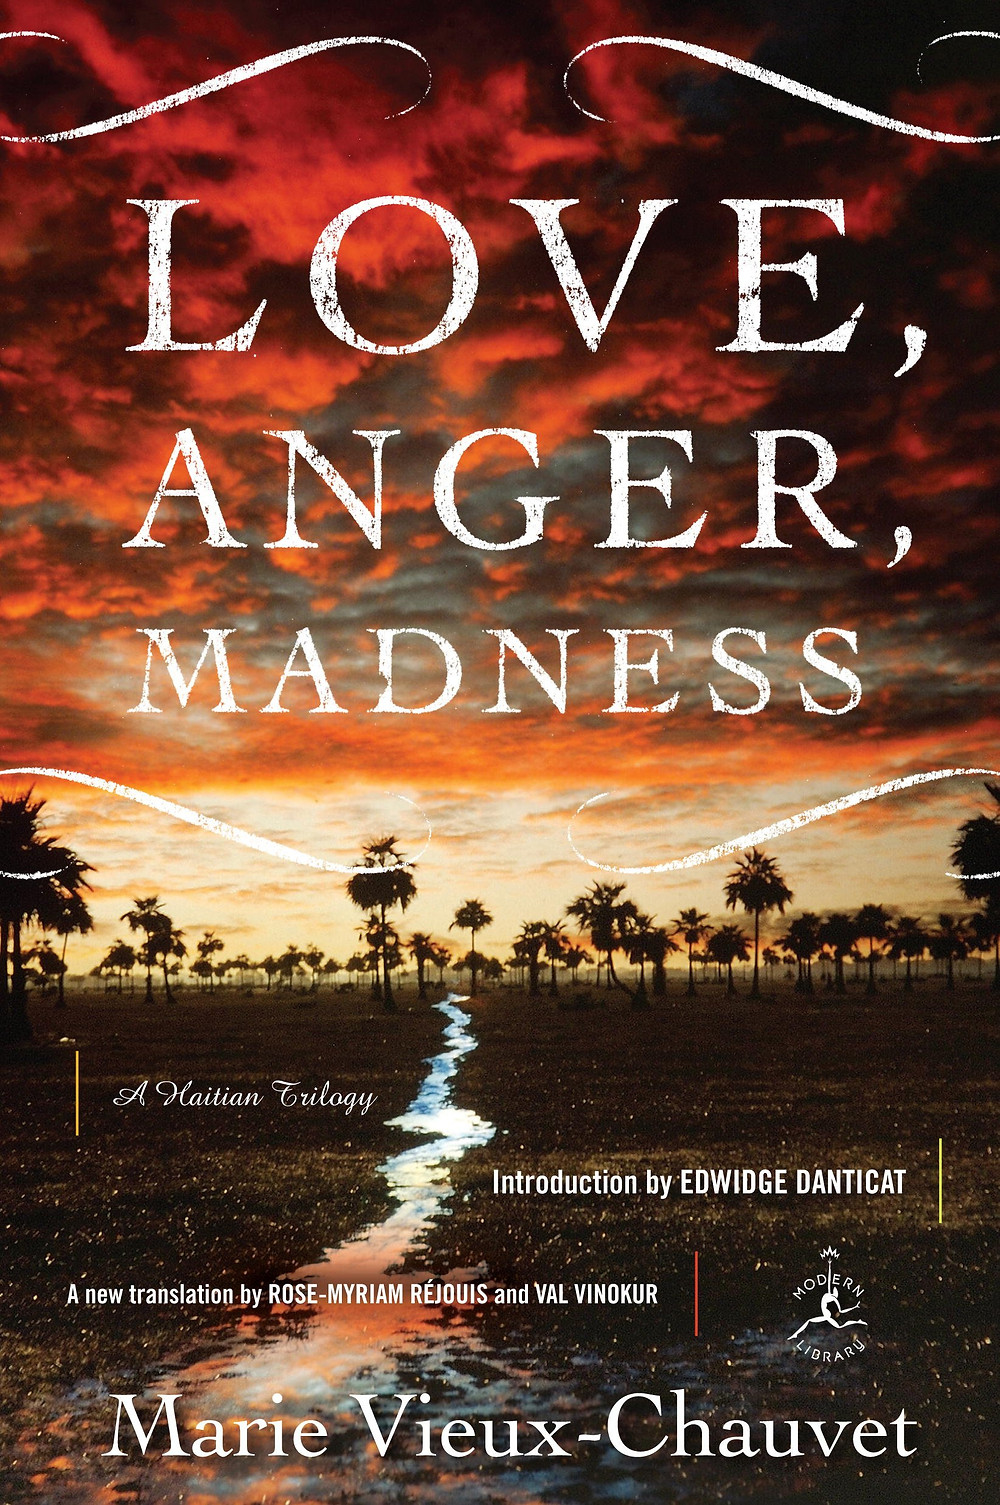 Love, Anger, Madness: A Haitian Trilogy by Marie Vieux-Chavet translated by Rose-Myriam Réjouis and Val Vinokur : the book slut book reviews